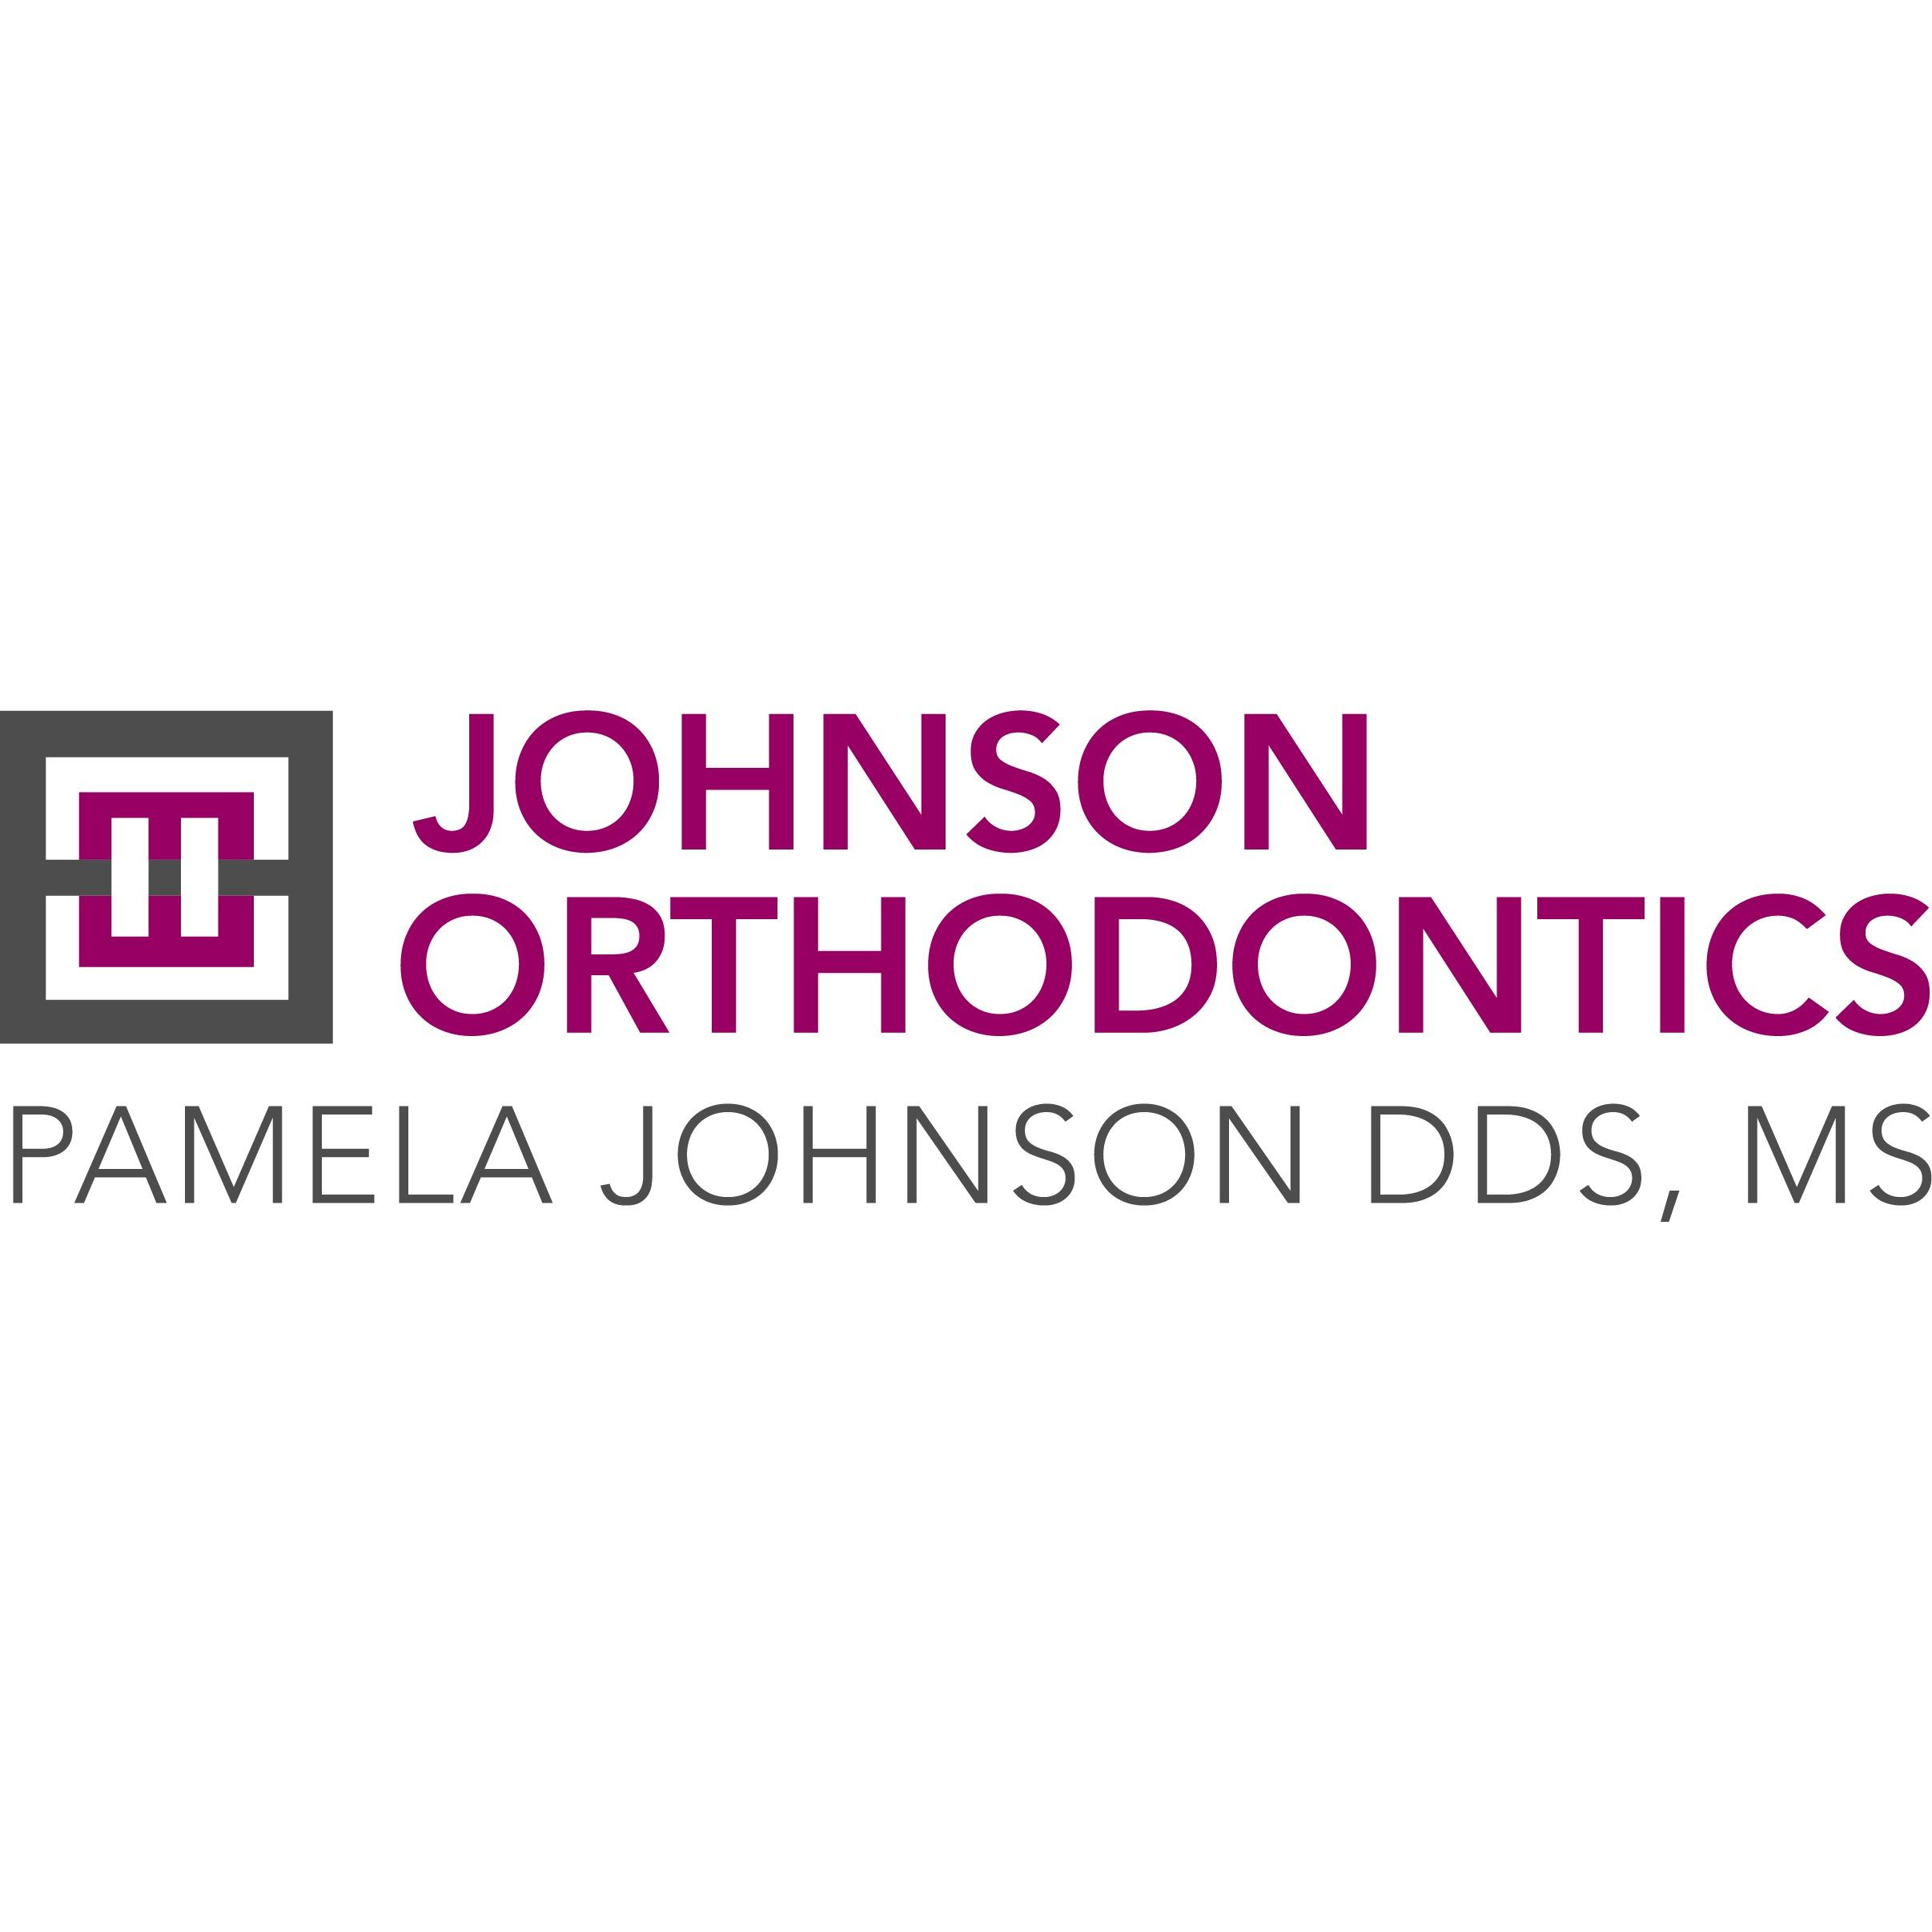 Pamela Johnson DDS, MS - Johnson Orthodontics